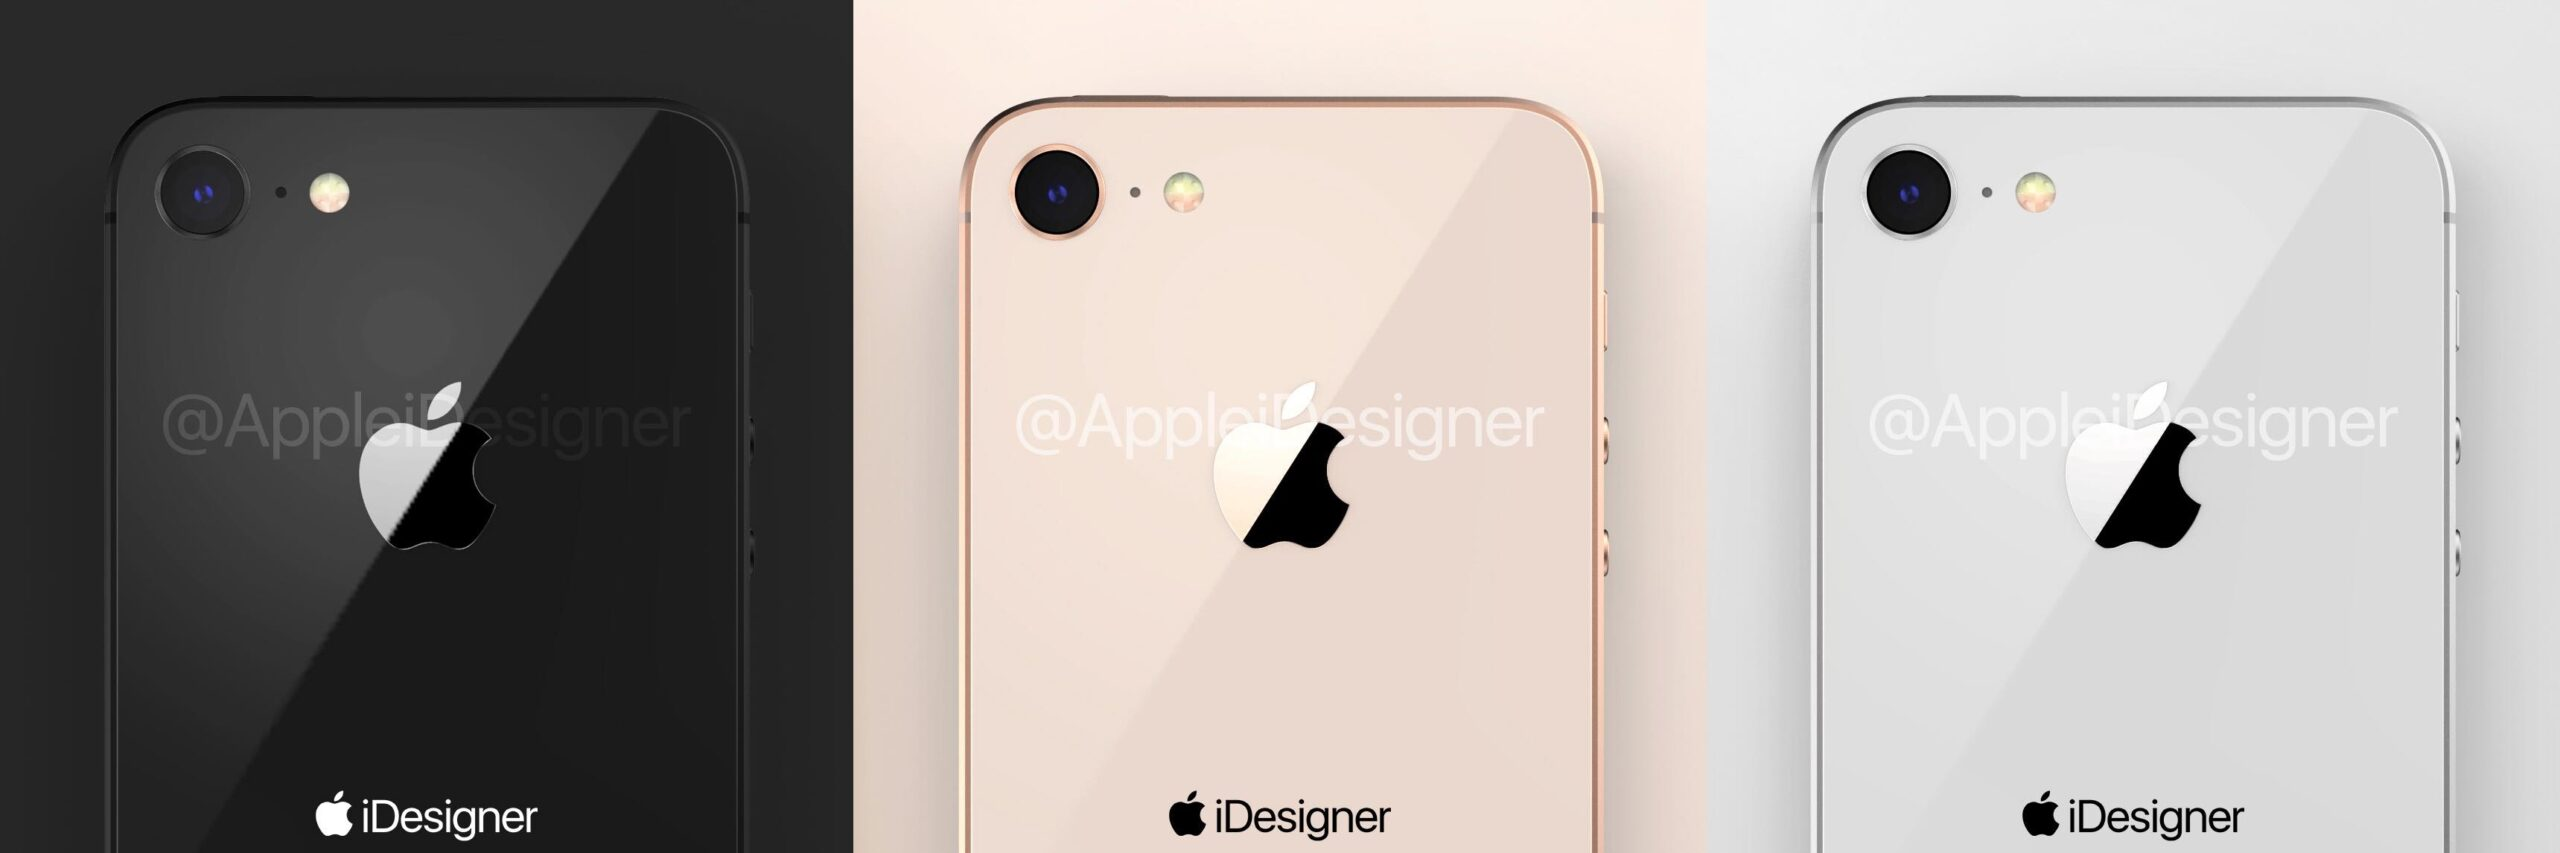 concept iphone se 2 by AppleiDesigner-9